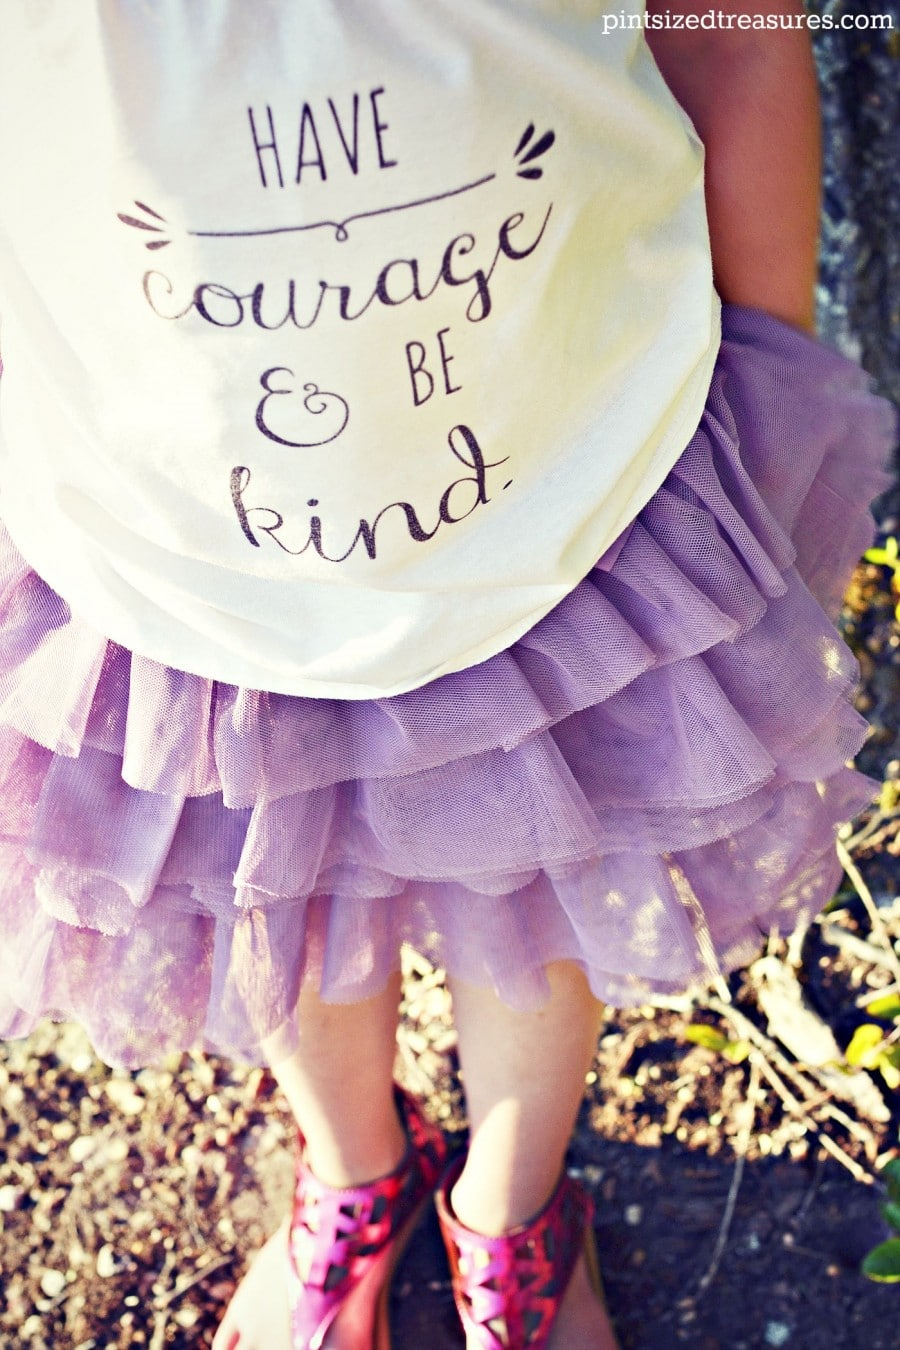 cinderella have courage and be kind diy craft